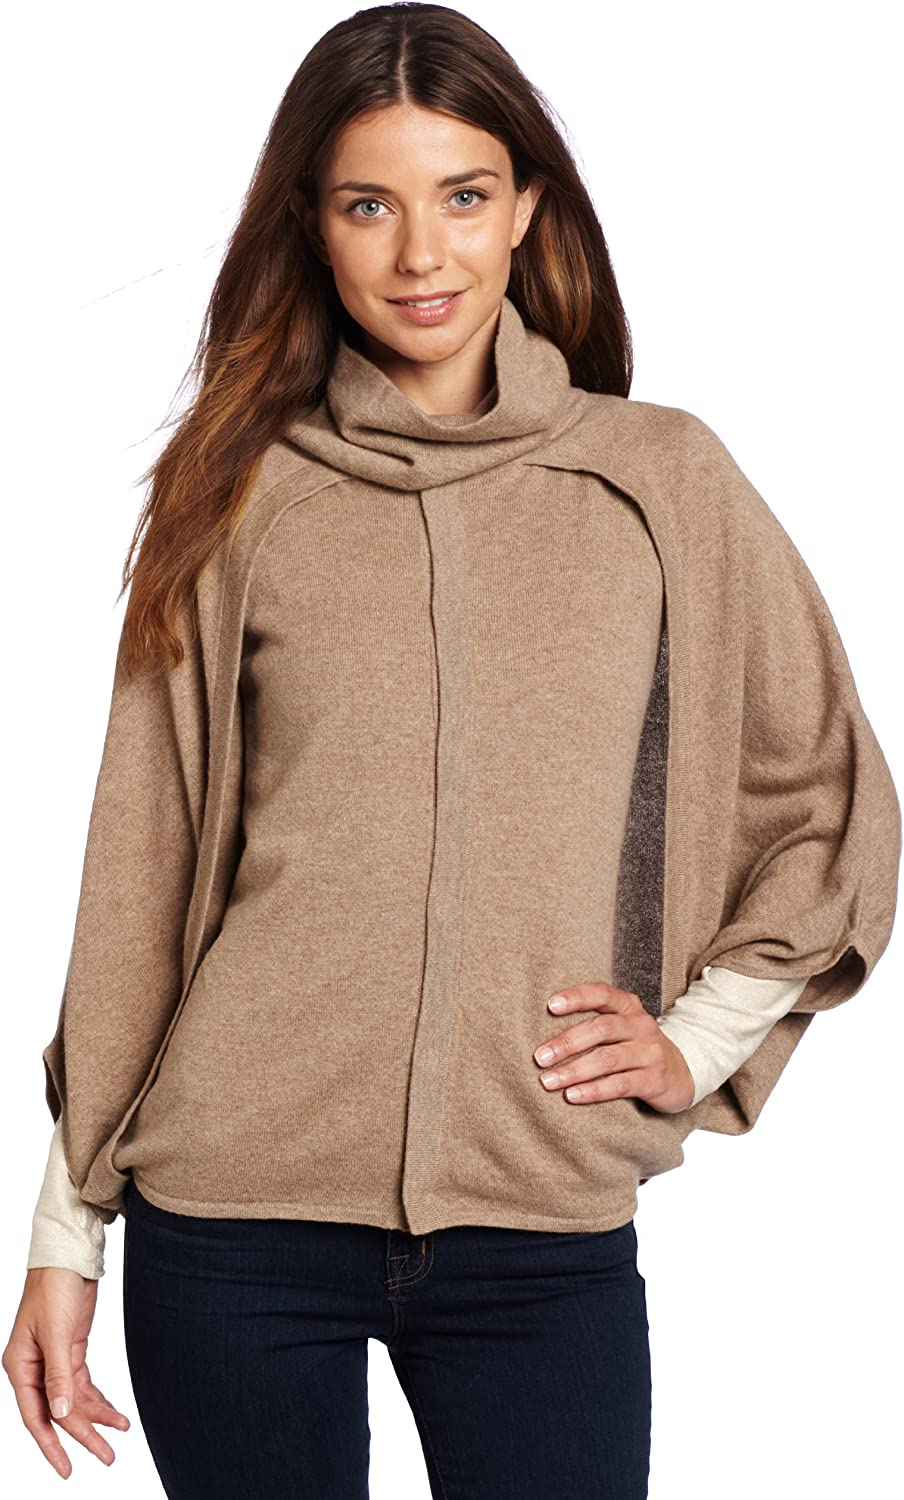 Evolution by Cyrus Women's 100% Cashmere Turtleneck Cape